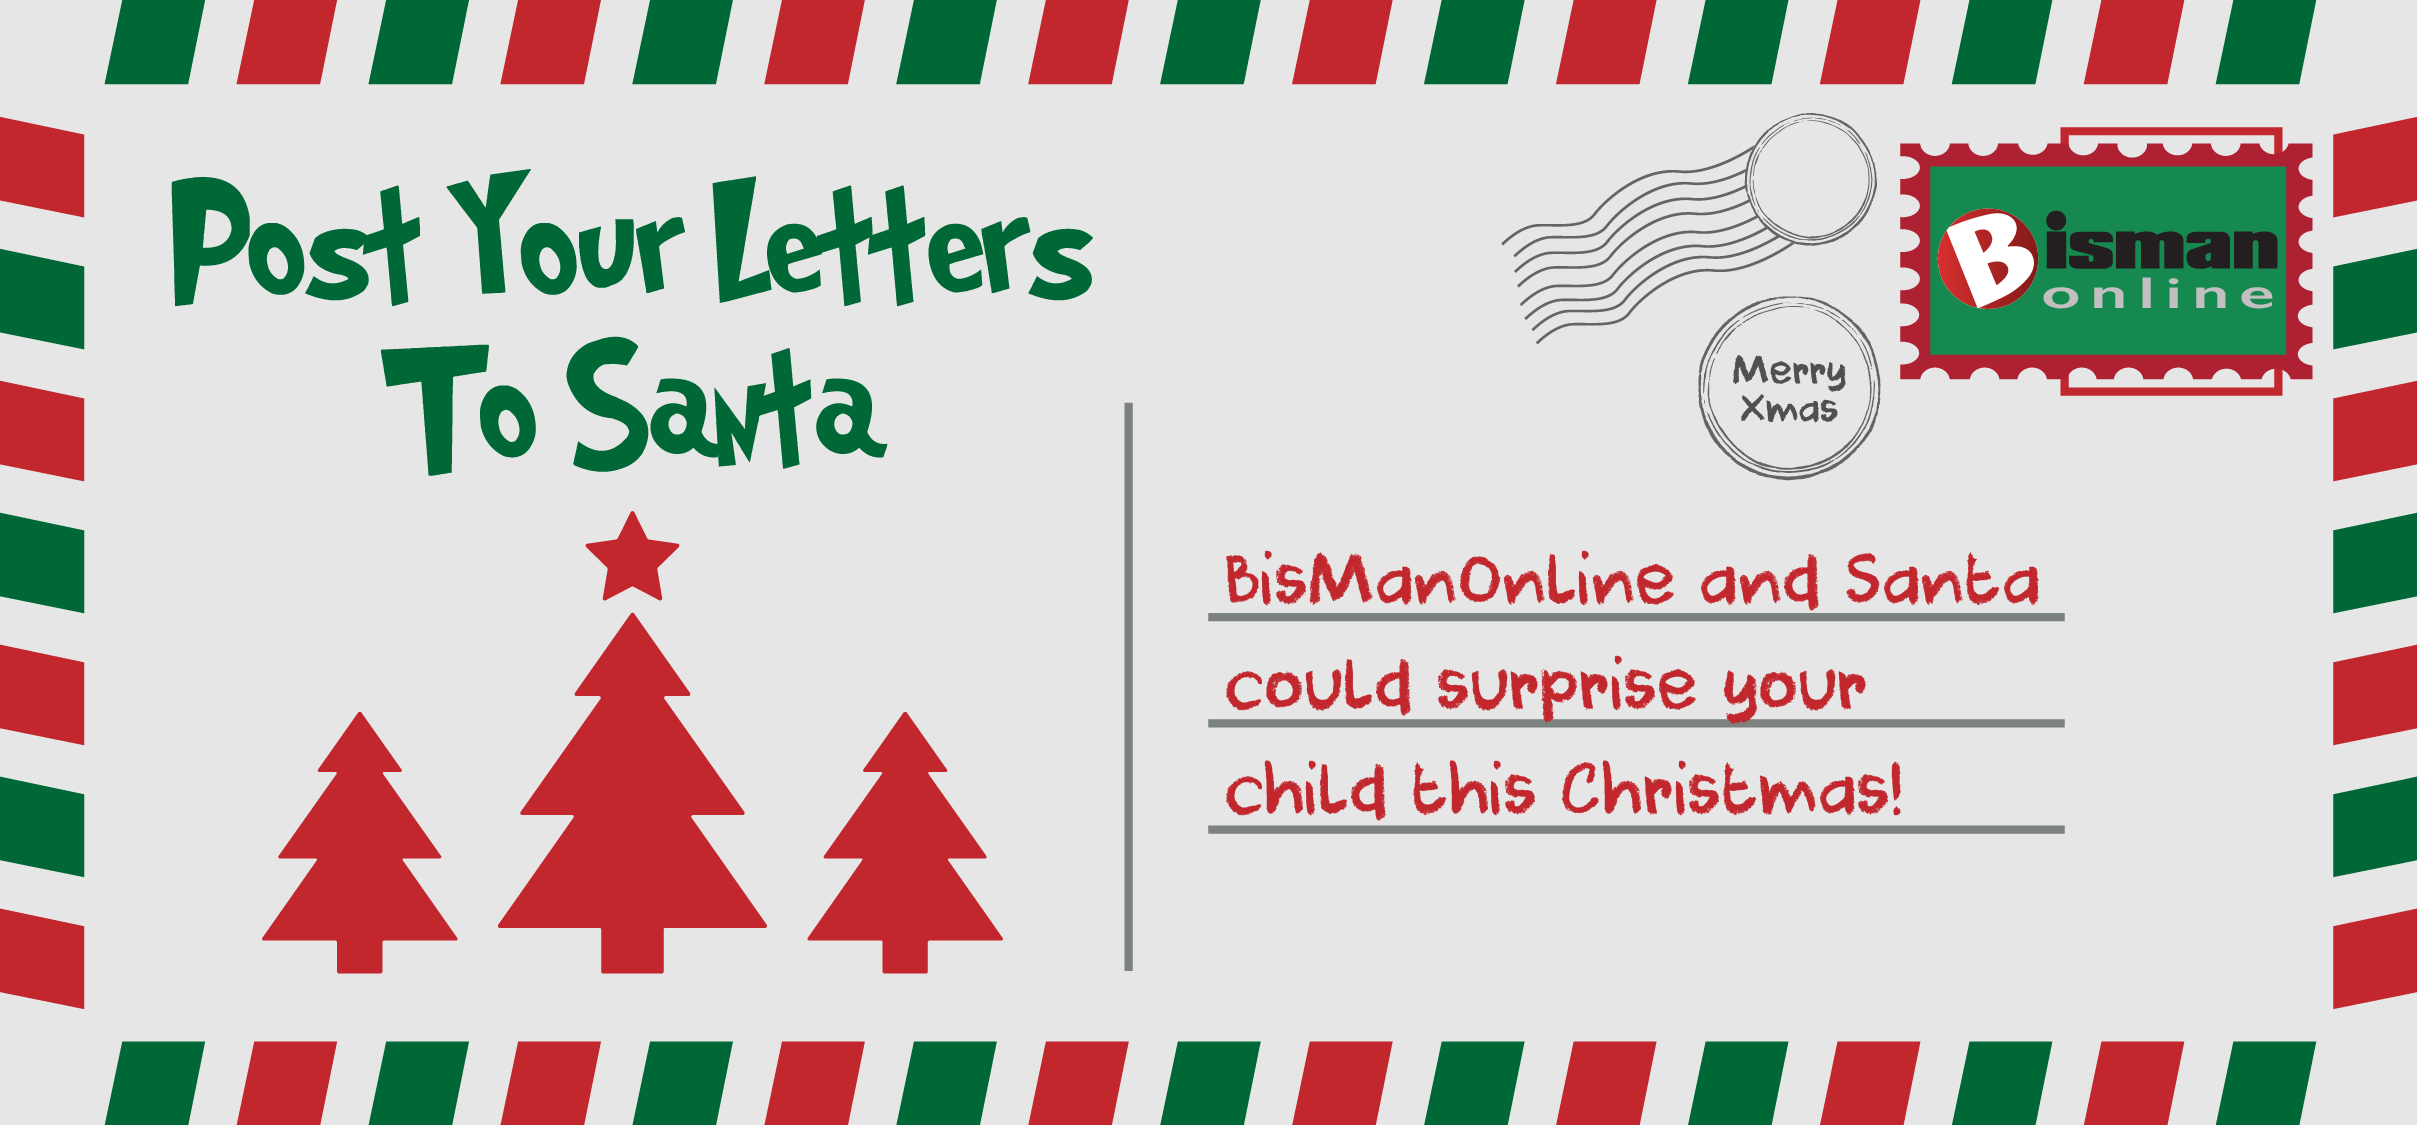 Postsantaletter bismanonline post your letter to santa and your child may receive a gift this christmas courtesy of santas helpers at bismanonline letters must be submitted on or spiritdancerdesigns Image collections